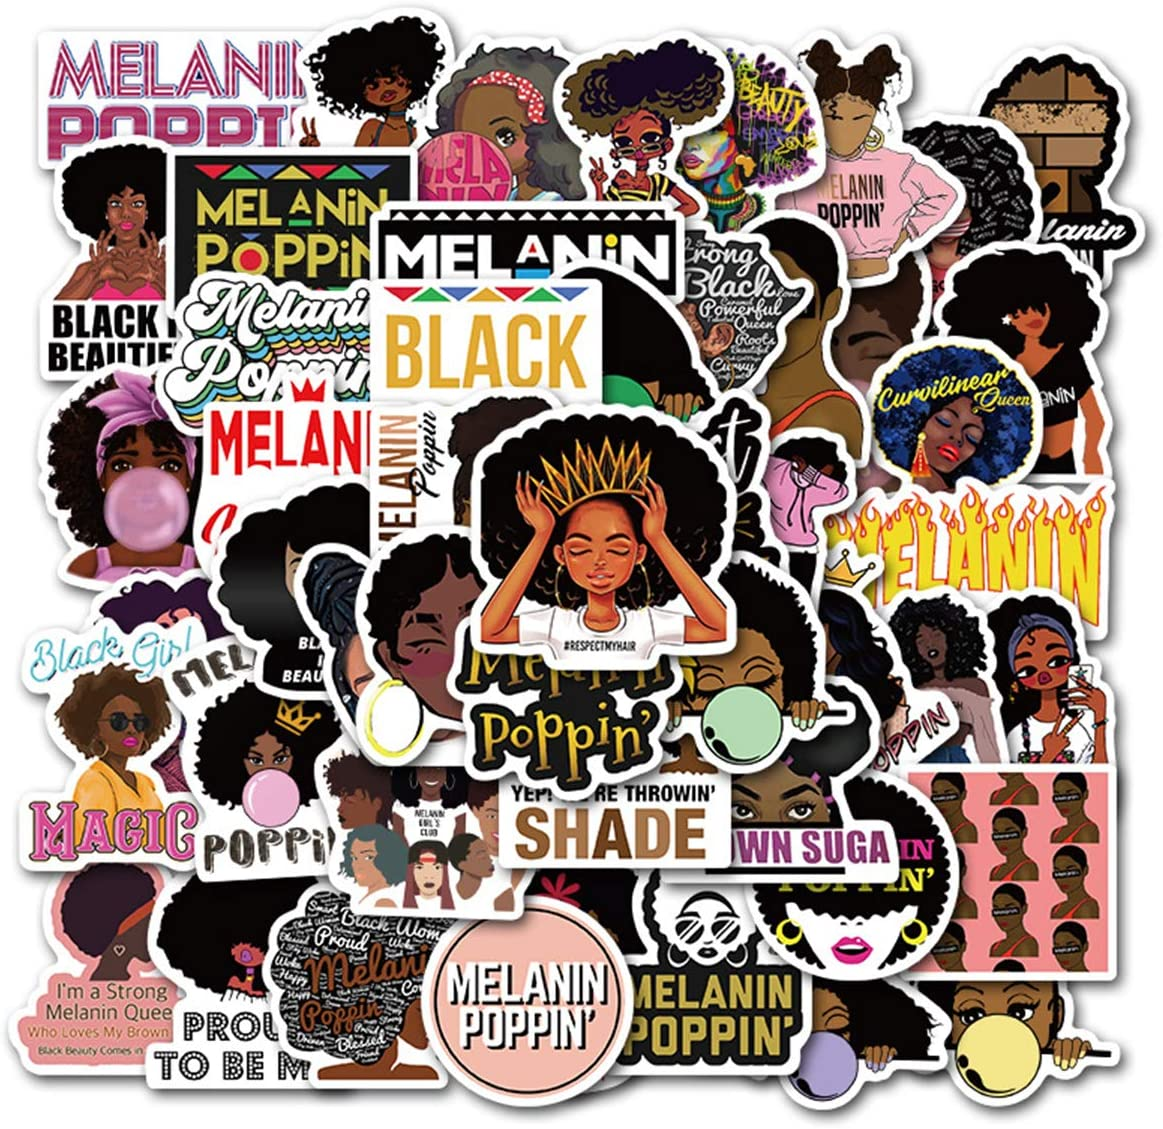 Struggle Stickers Melanin Poppin Stickers 50Pcs Variety Vinyl Waterproof Car Sticker Motorcycle Bicycle Luggage Decal Graffiti Patches Skateboard Stickers for Laptop Stickers (Melanin Poppin)